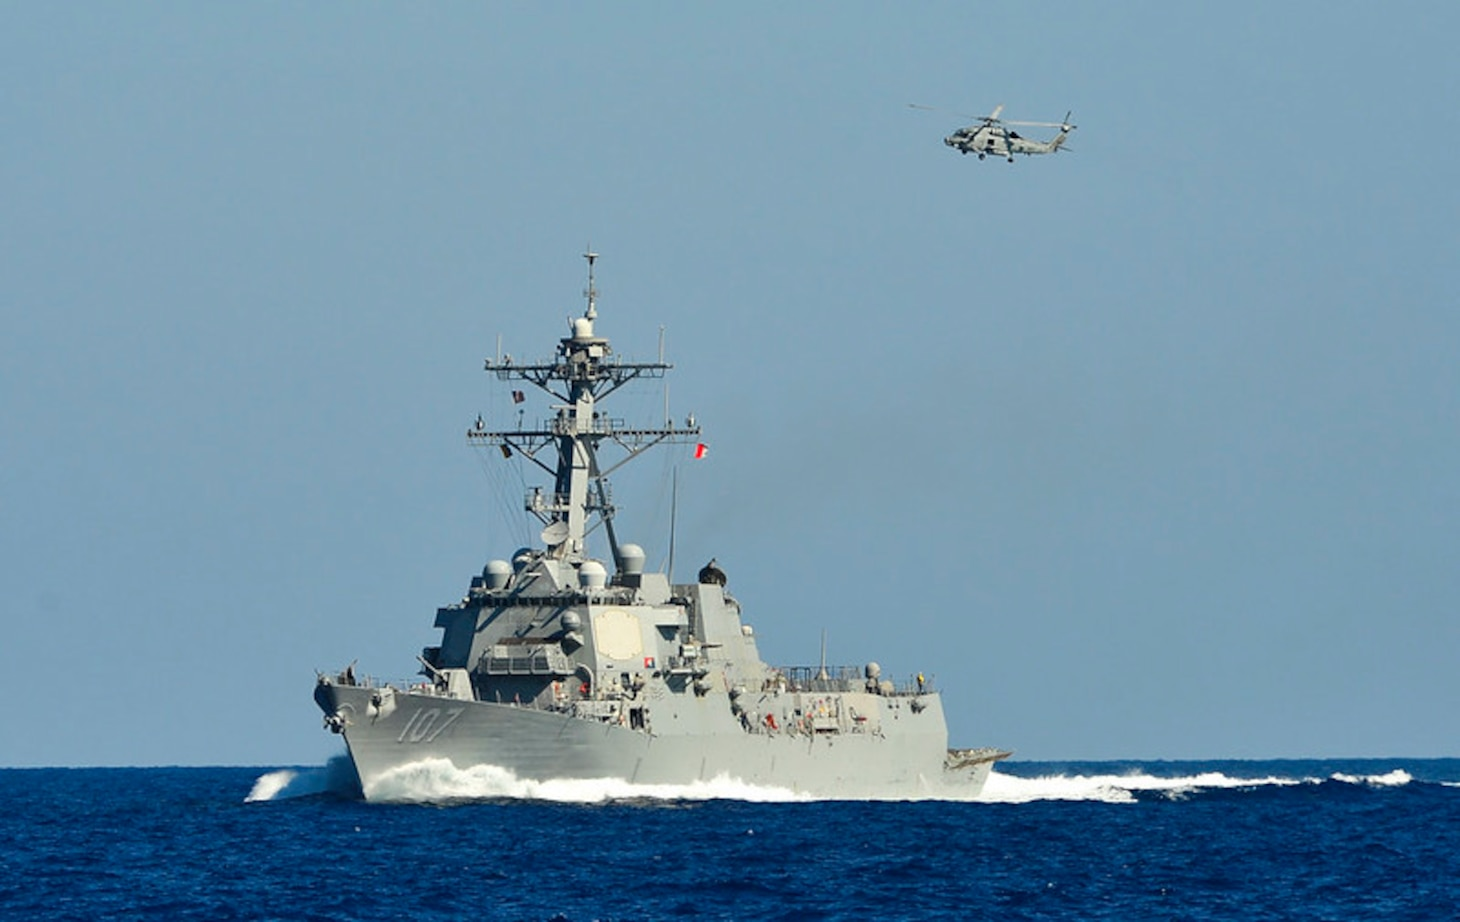 An MH-60R Sea Hawk helicopter from the Swamp Foxes of Helicopter Maritime Strike Squadron (HSM) 74 flies by the guided-missile destroyer USS Gravely (DDG 107). Gravely is deployed in support of maritime security operations and theater security cooperation efforts in the U.S. 6th Fleet area of operations.